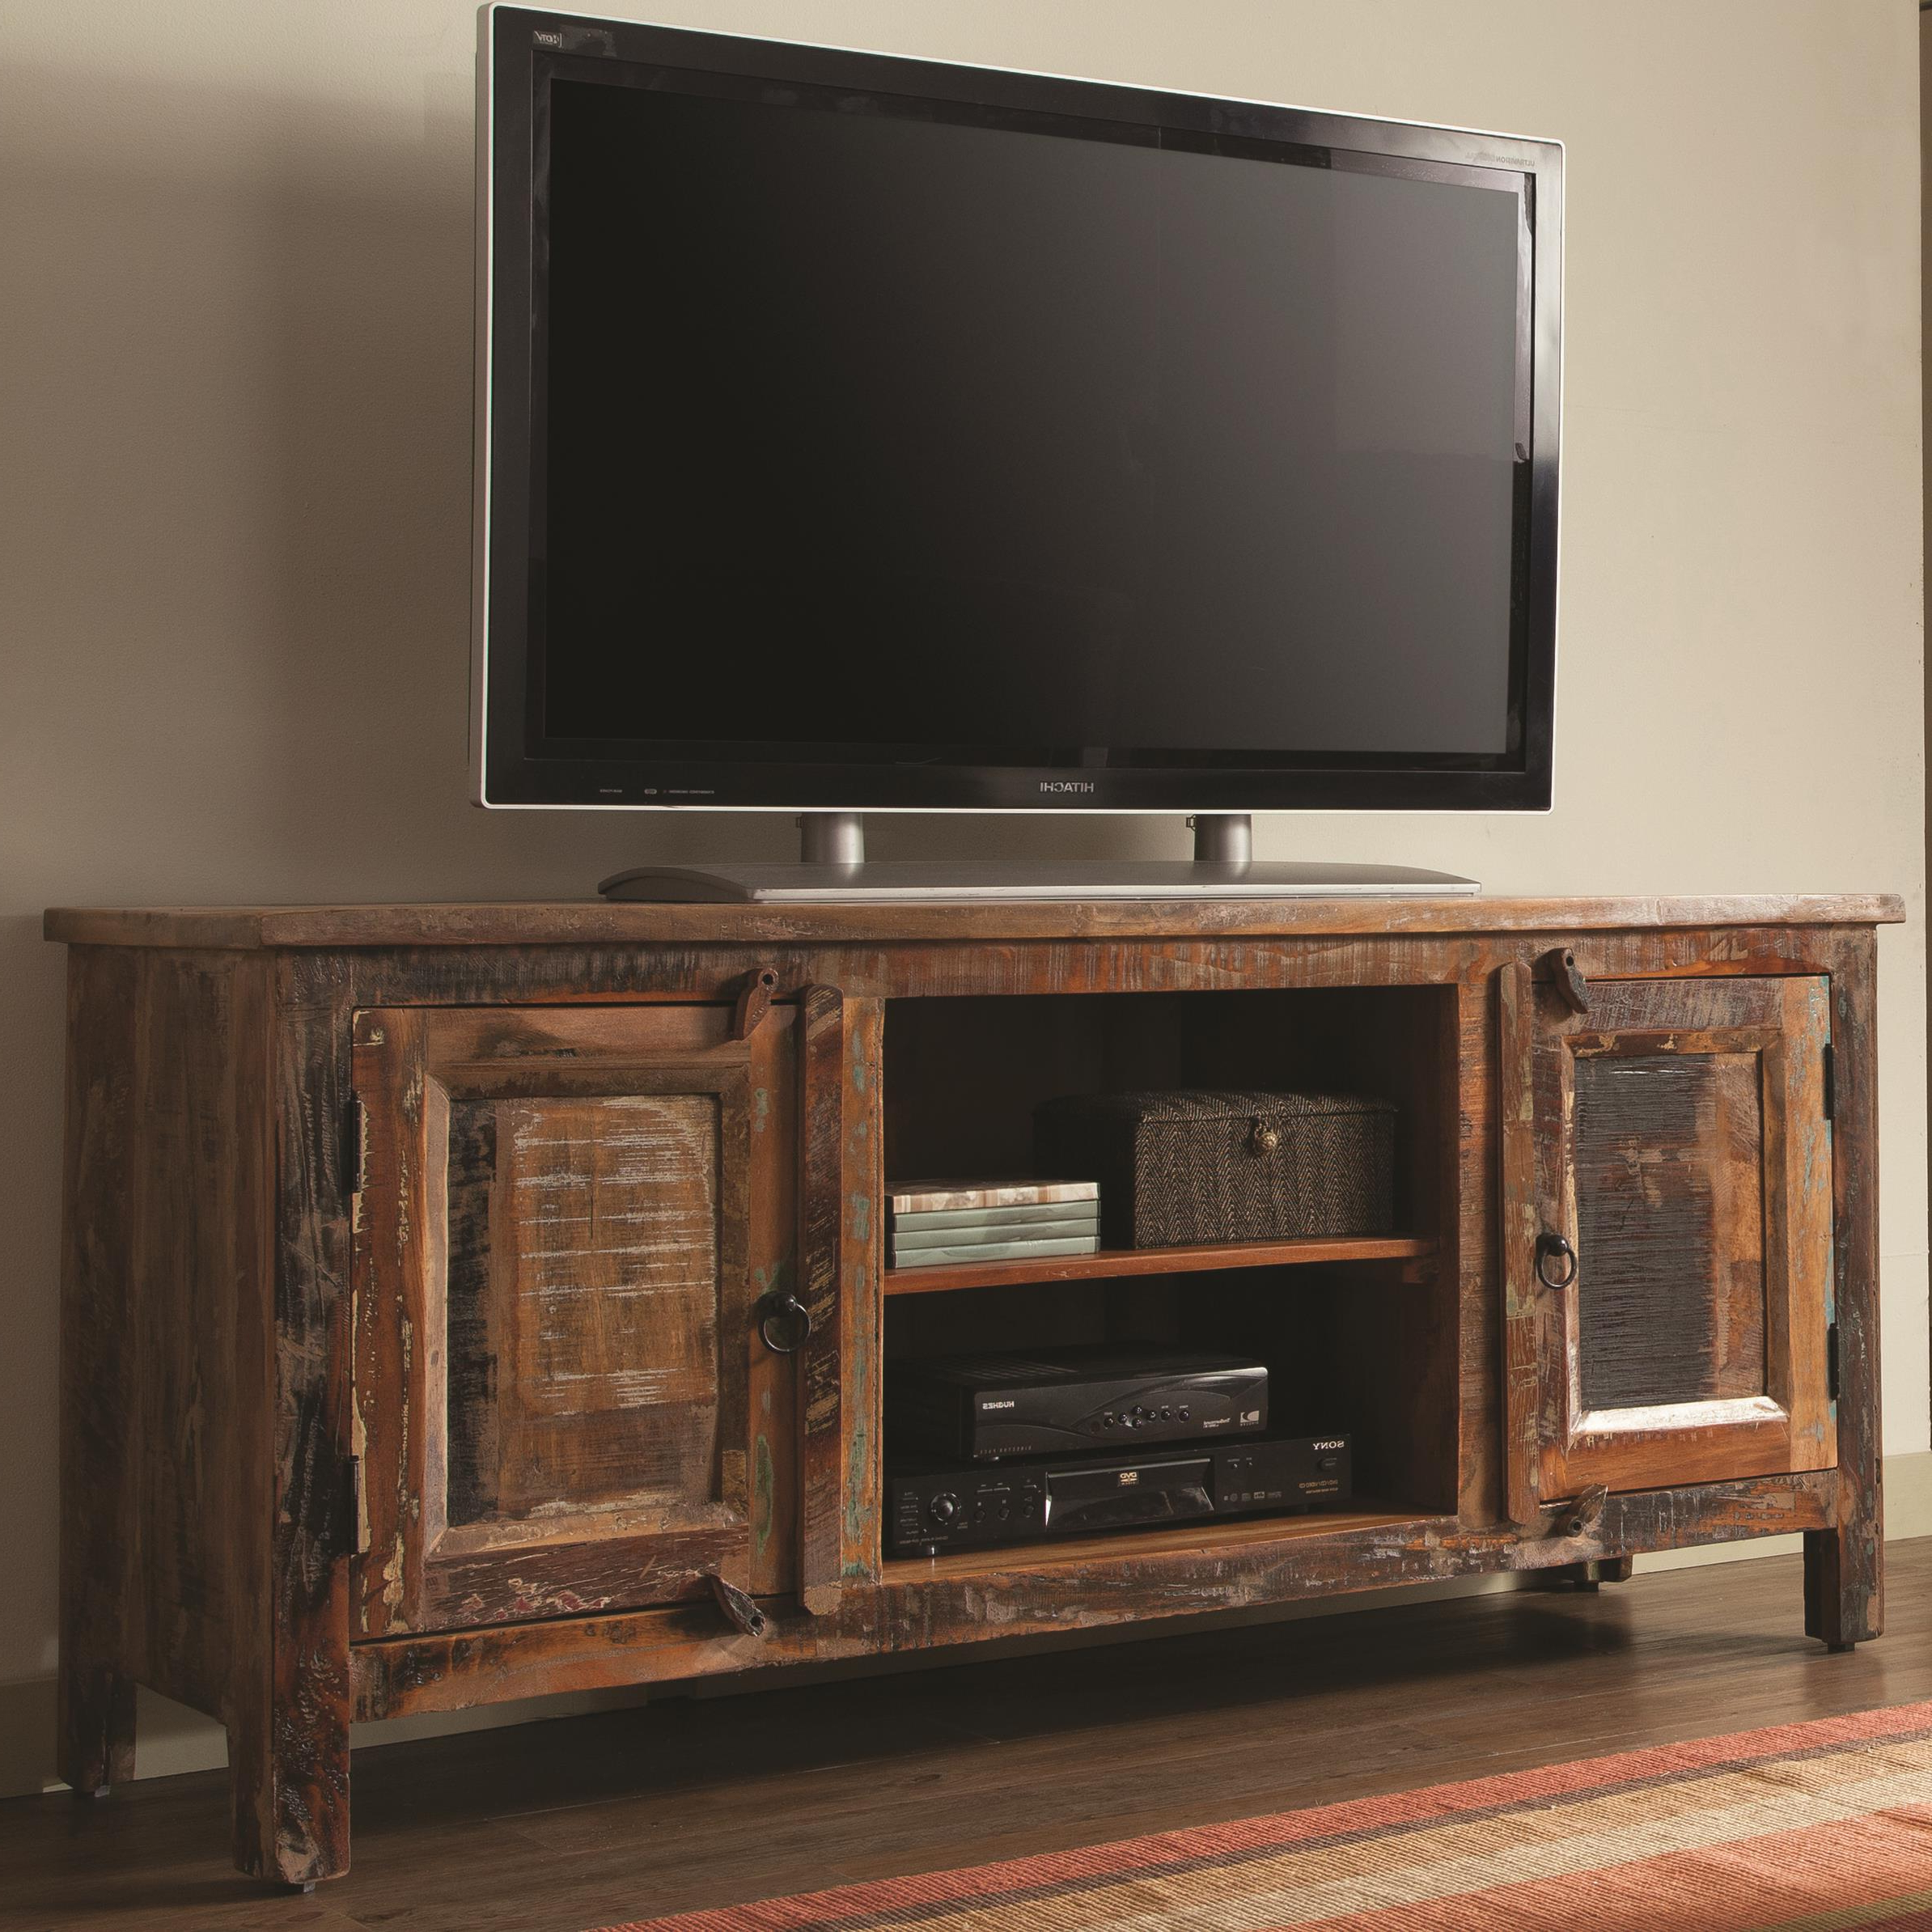 Well Liked Wooden Tv Stands With Regard To Coaster Accent Cabinets Reclaimed Wood Tv Stand (View 14 of 20)